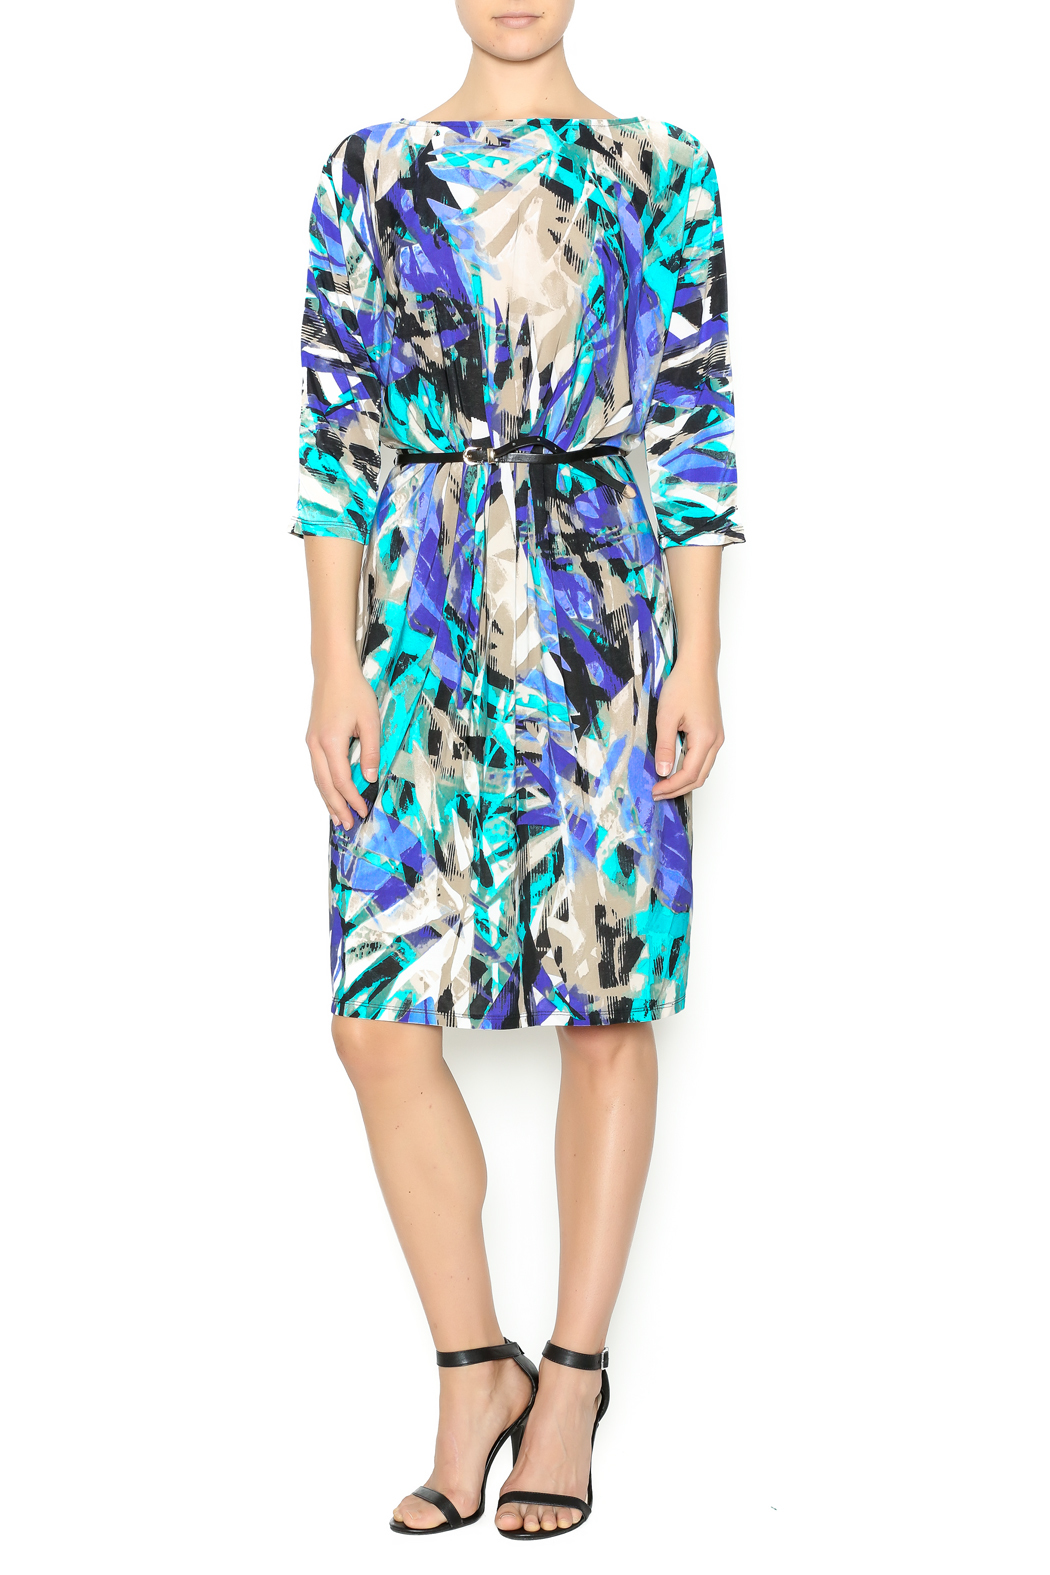 In The Loop Geometric Print Dress - Front Cropped Image